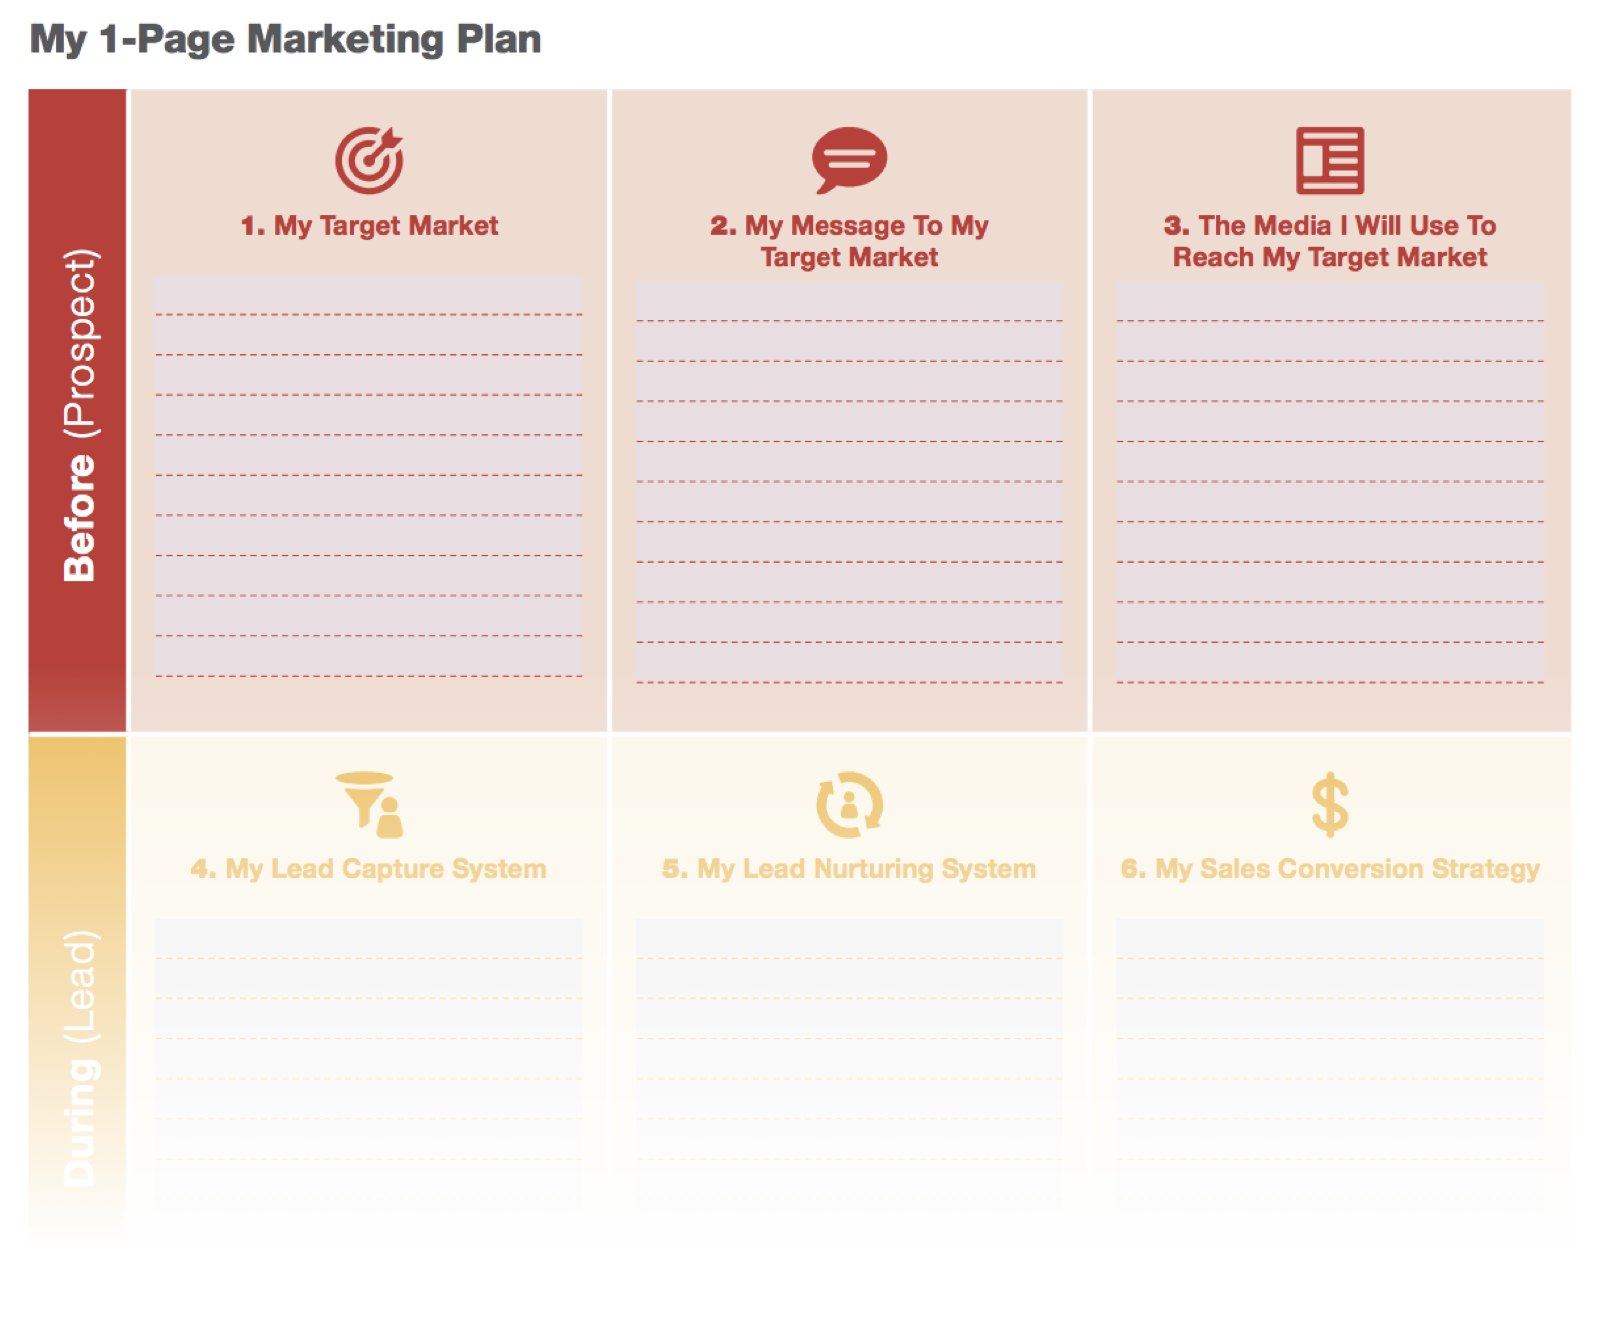 Working on a marketing plan can be a good use of your downtime (the 1 page marketing plan by Alan Dibb).